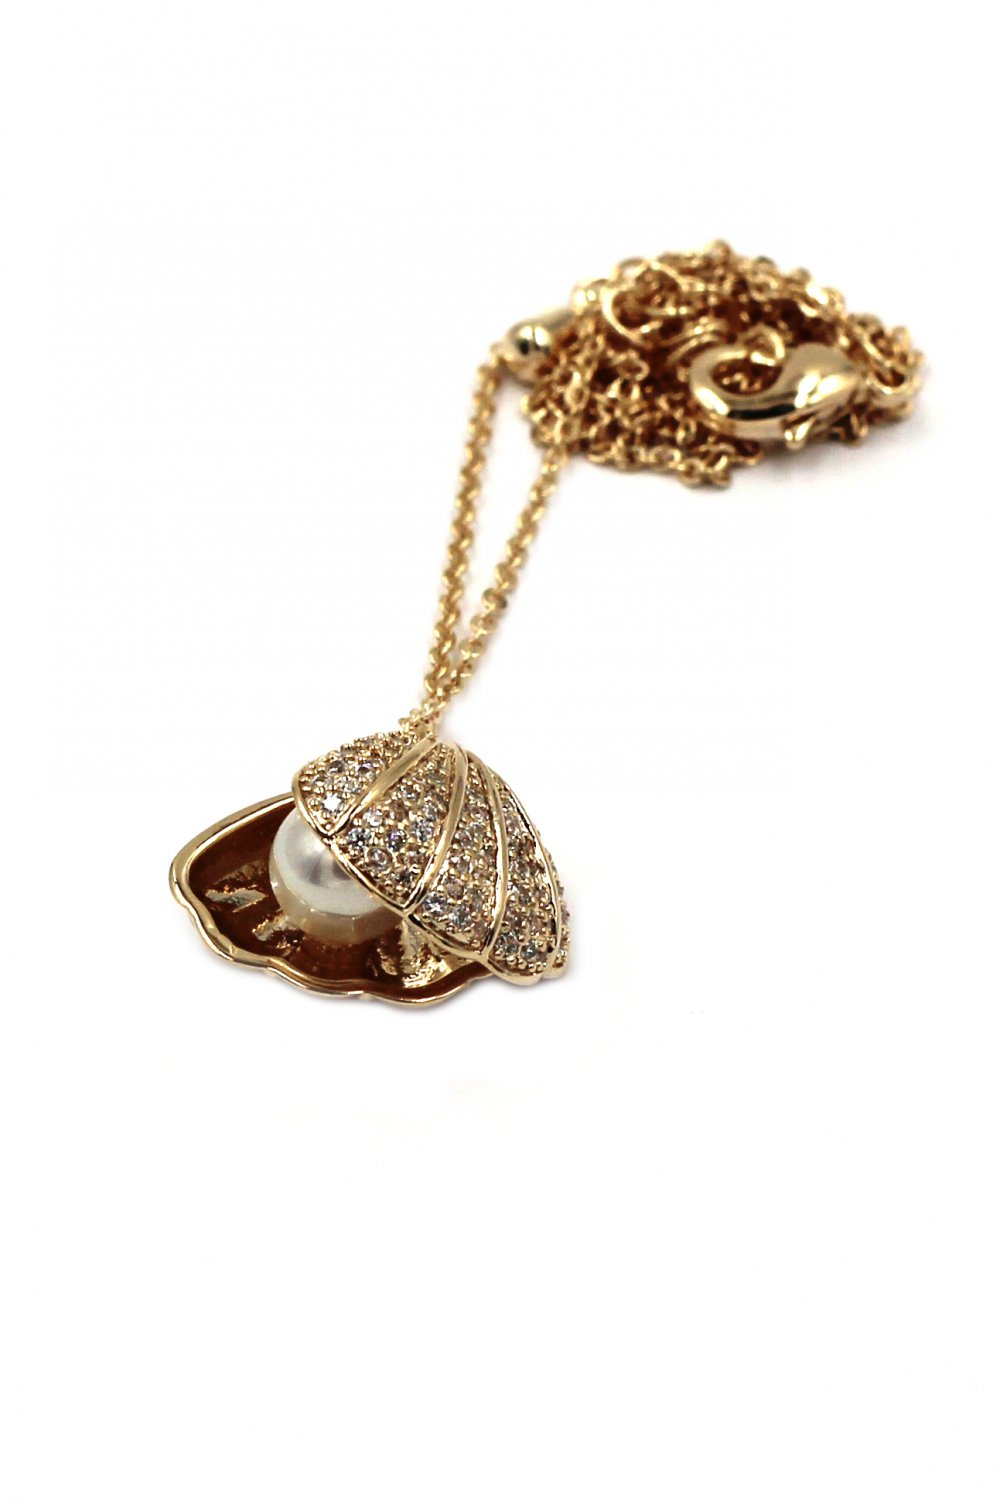 Pearl shell gold necklace